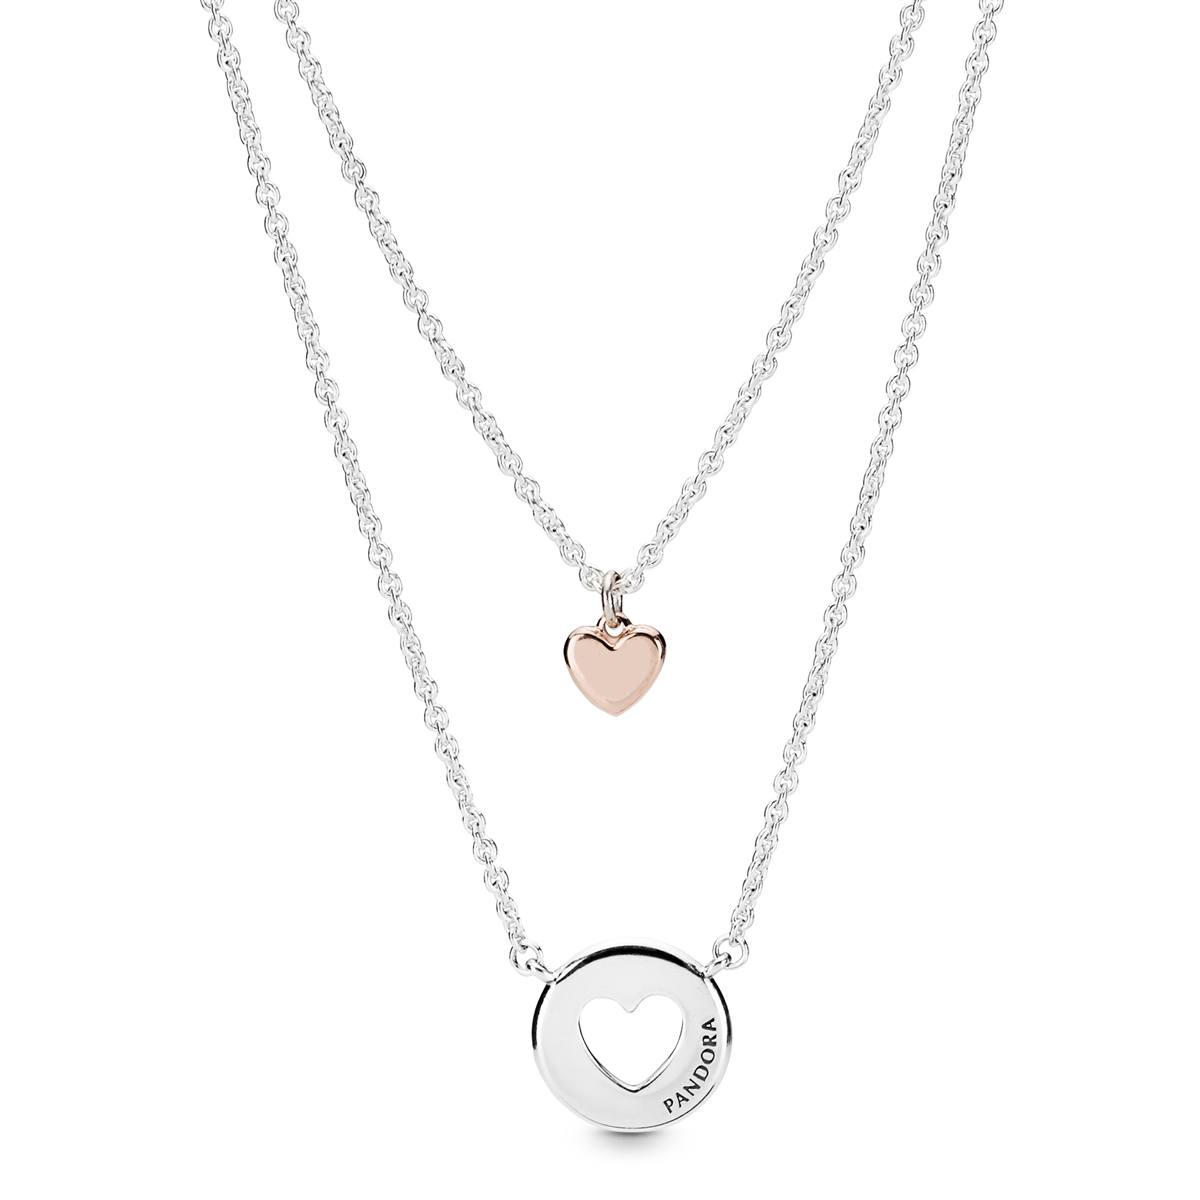 3002feec2 PANDORA Rose™ Layered Heart Necklaces 388083-50 ...